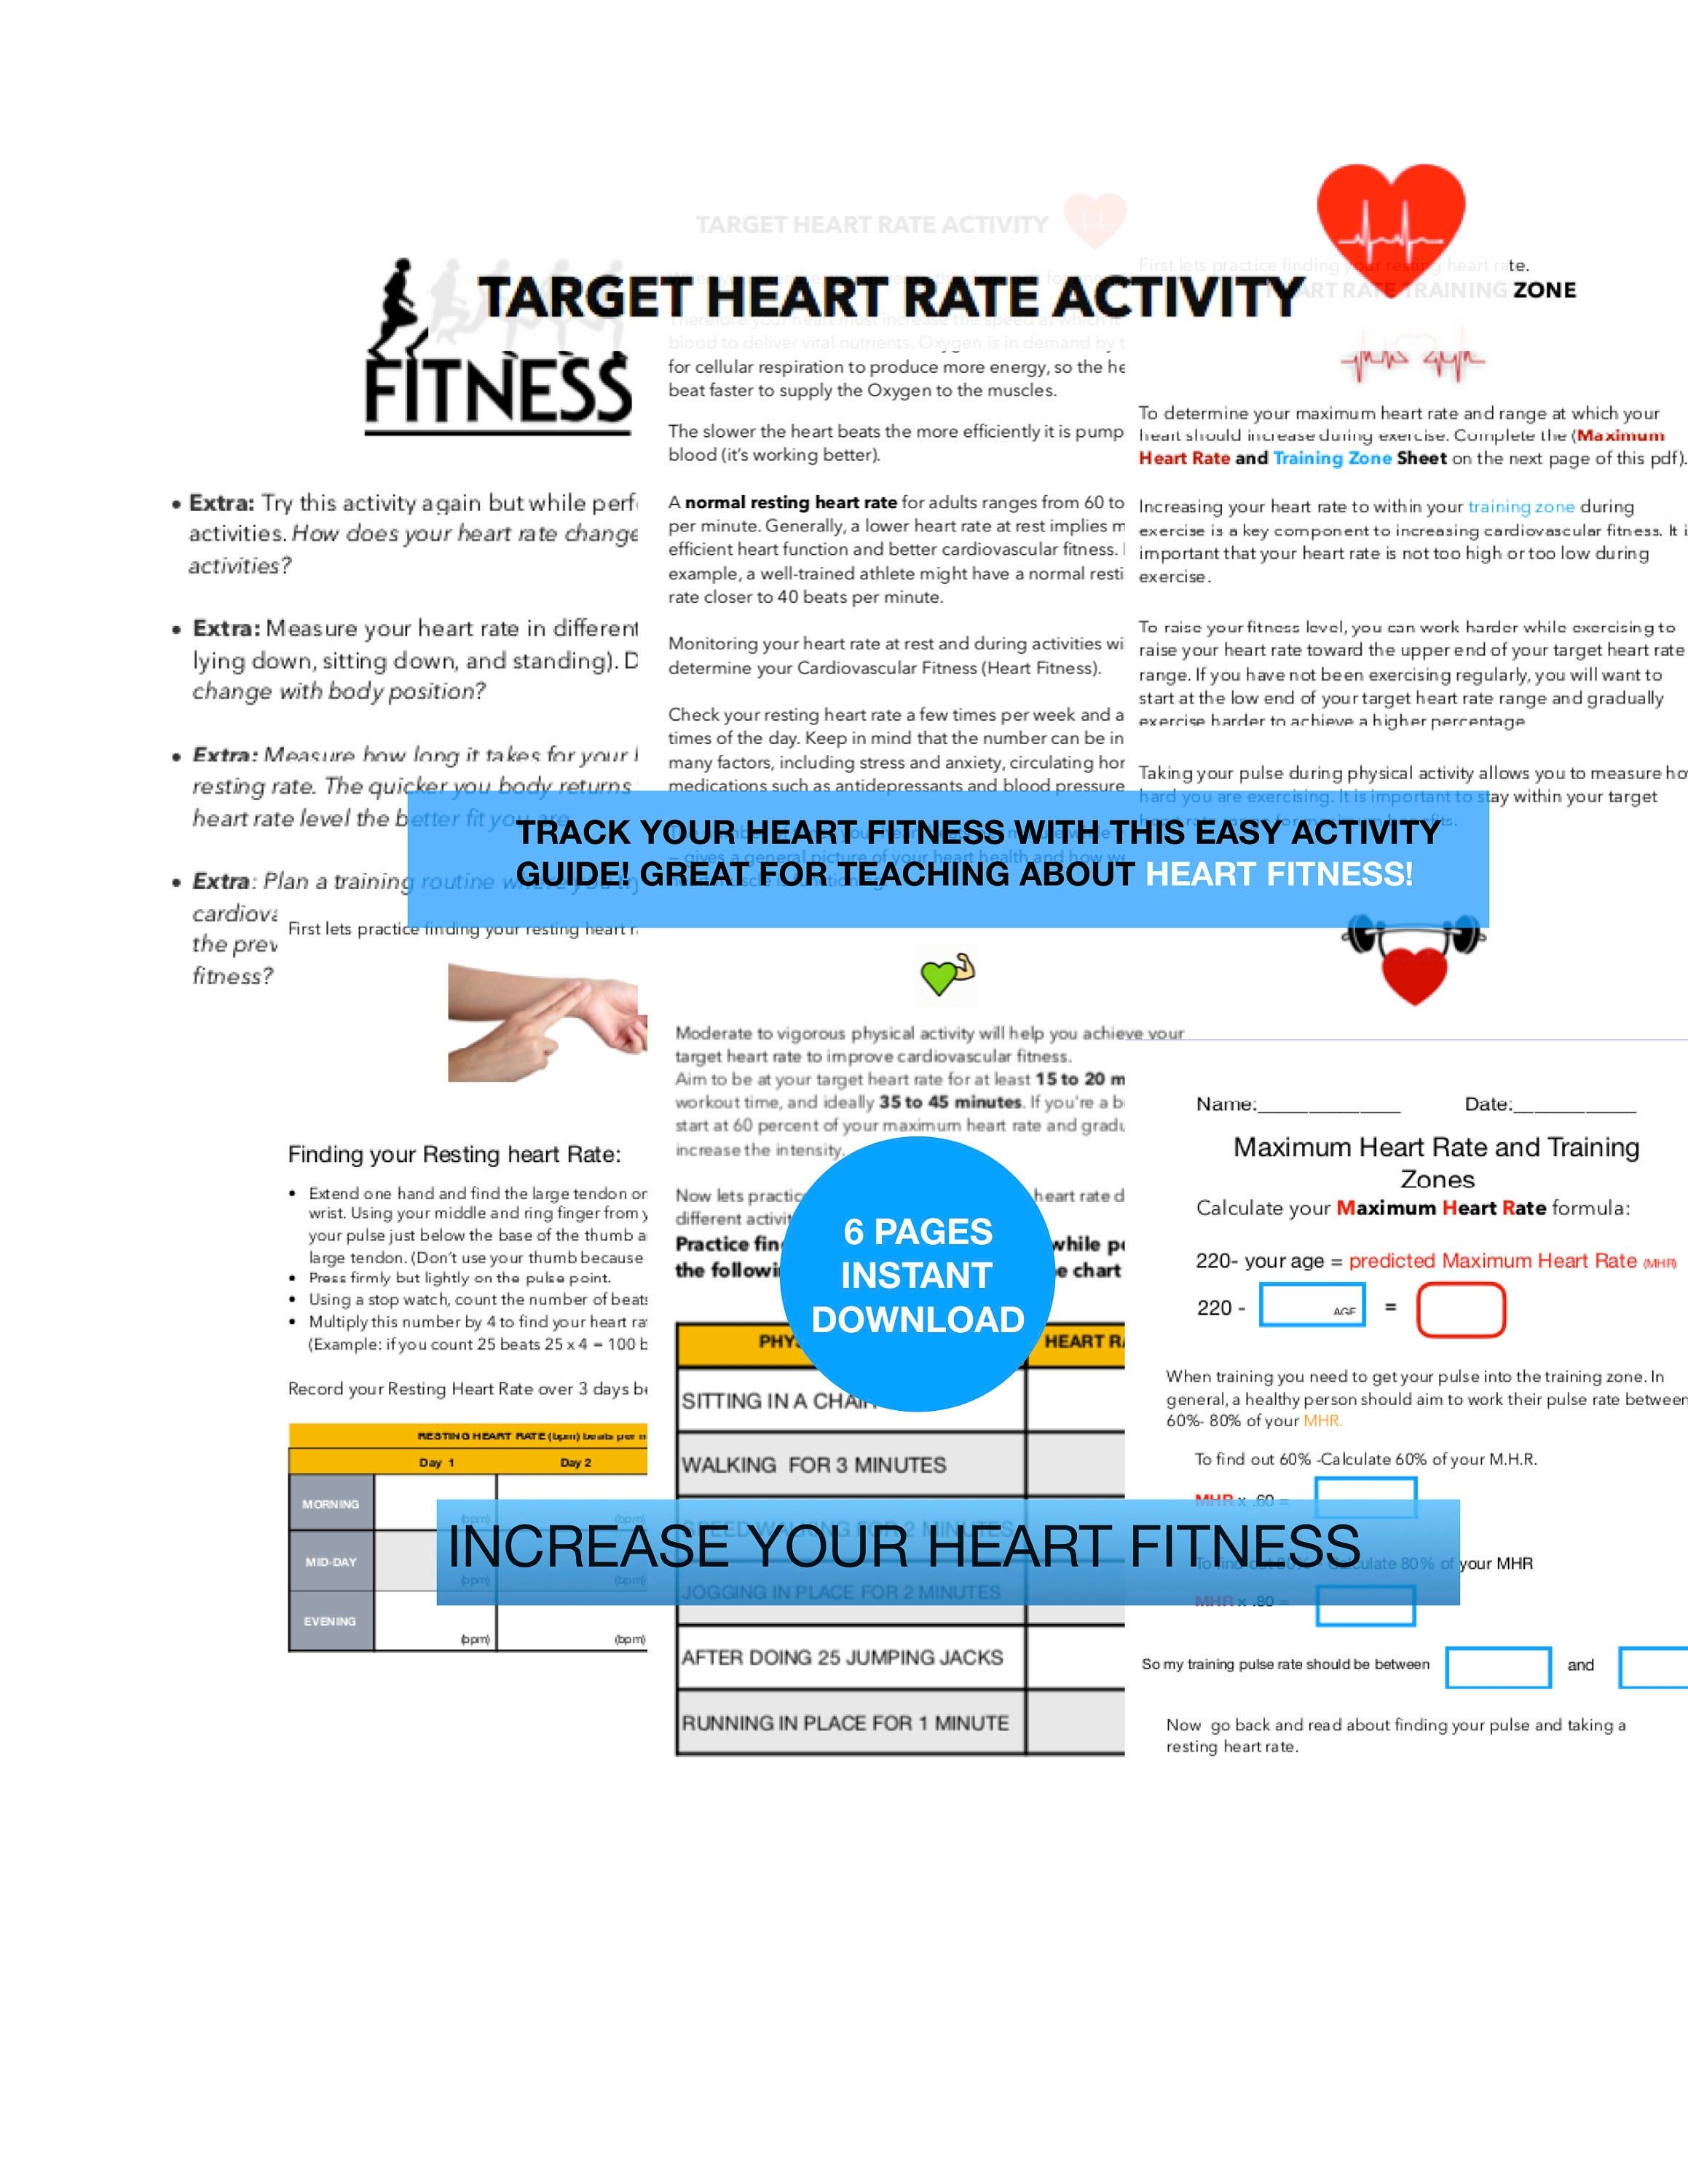 Heart Rate Fitness Lab Exercise Log Cardiovascular